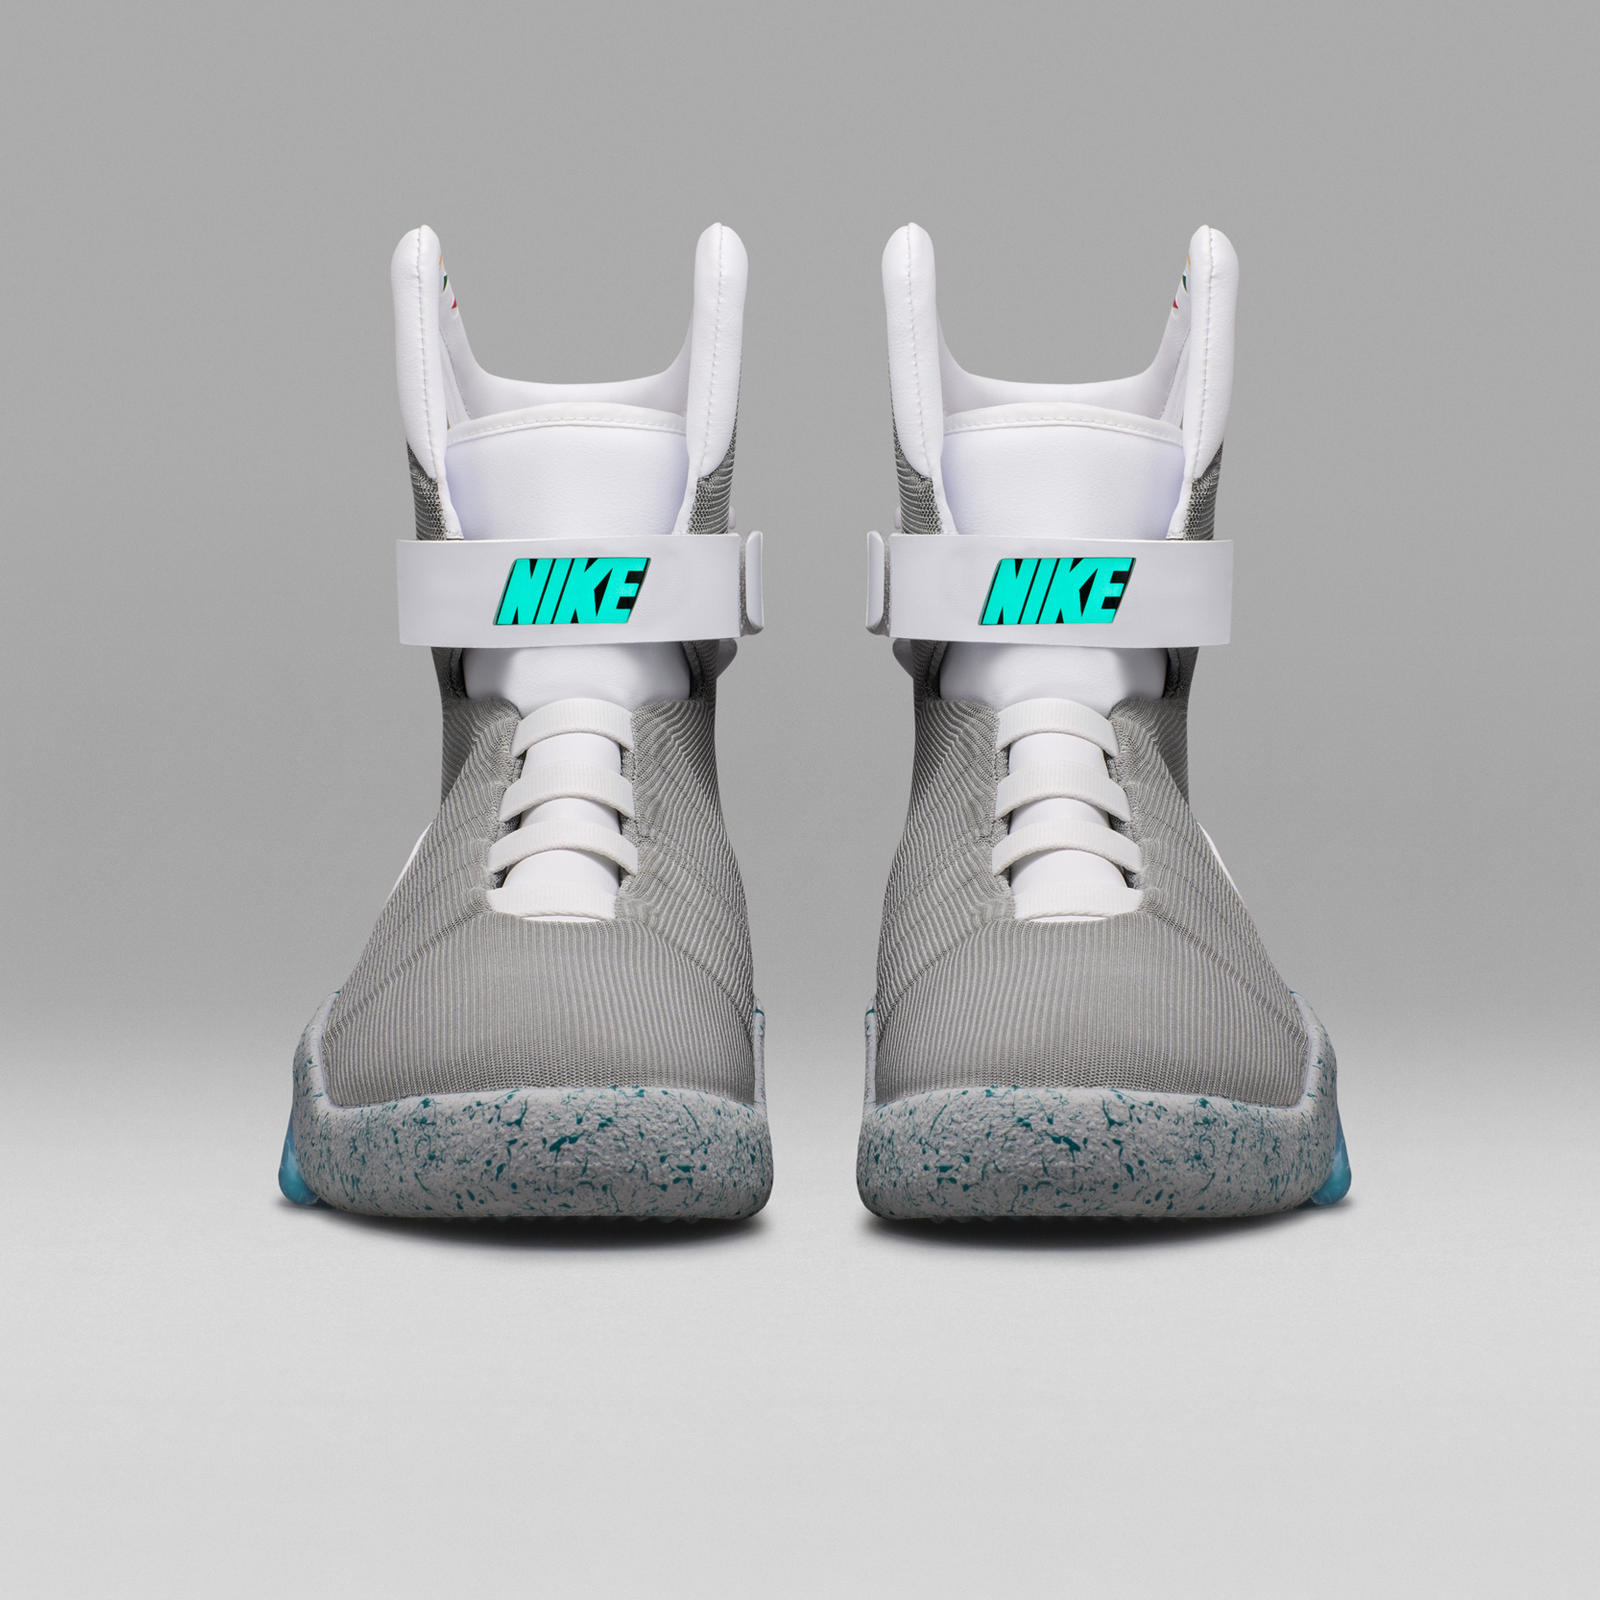 chisme Todopoderoso Acelerar  How to Get the 2016 Nike Mag - Nike News